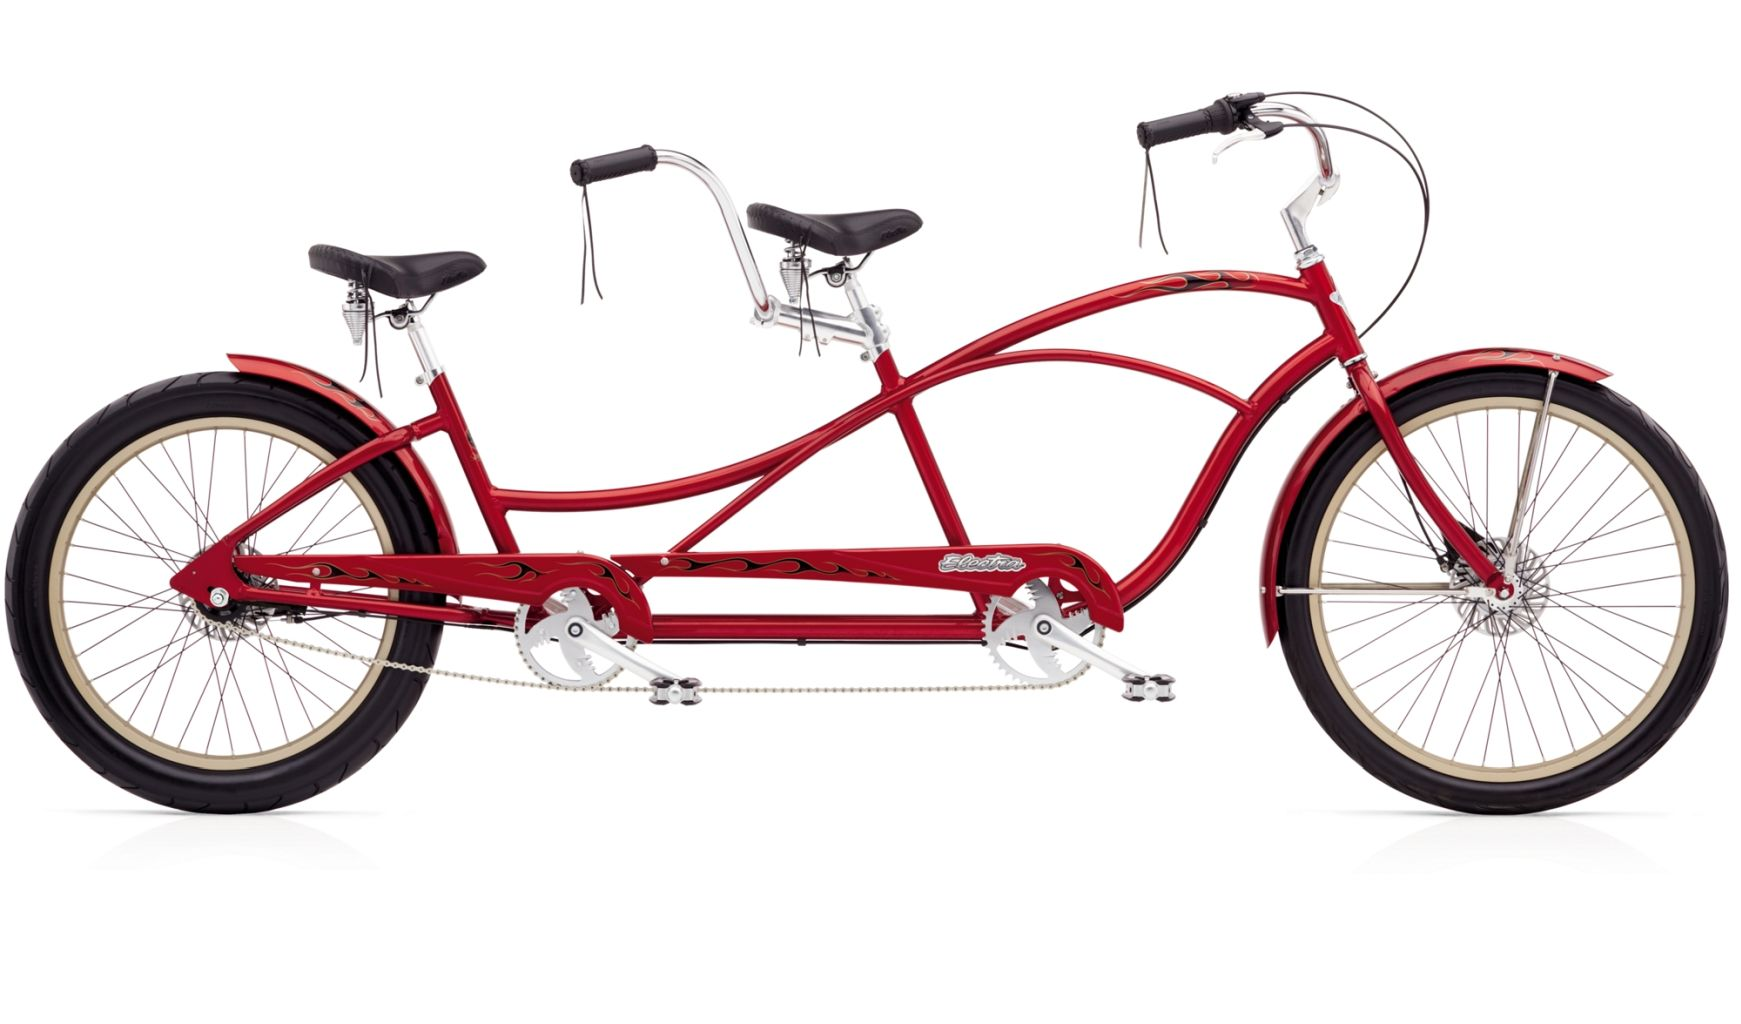 Electra Hell Betty 7i Metallic Red-30